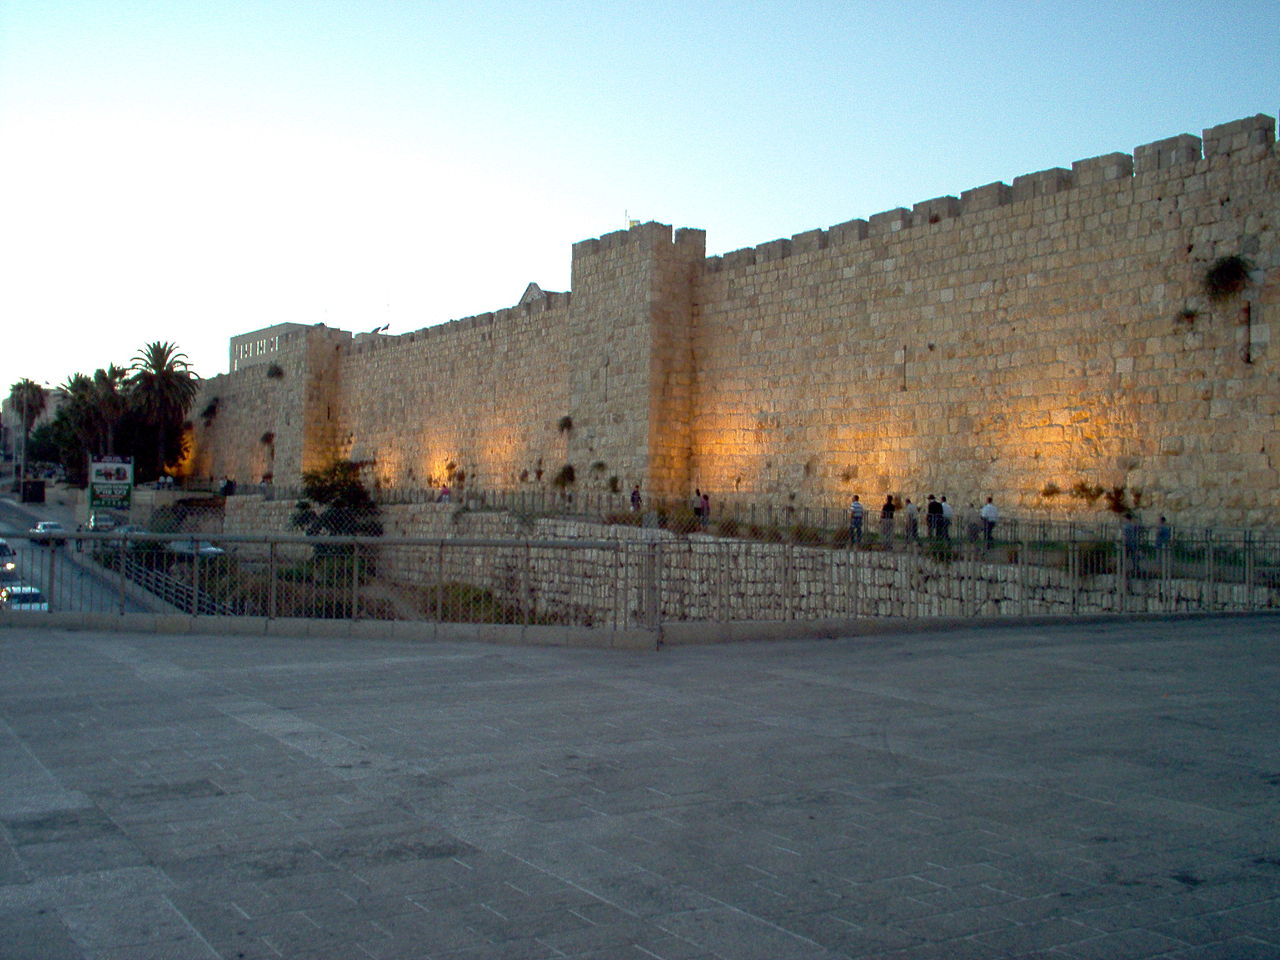 The old city walls near the Jaffa Gate. dans images 1280px-Jerusalem_-_Walls_leading_to_Jaffo_Gate